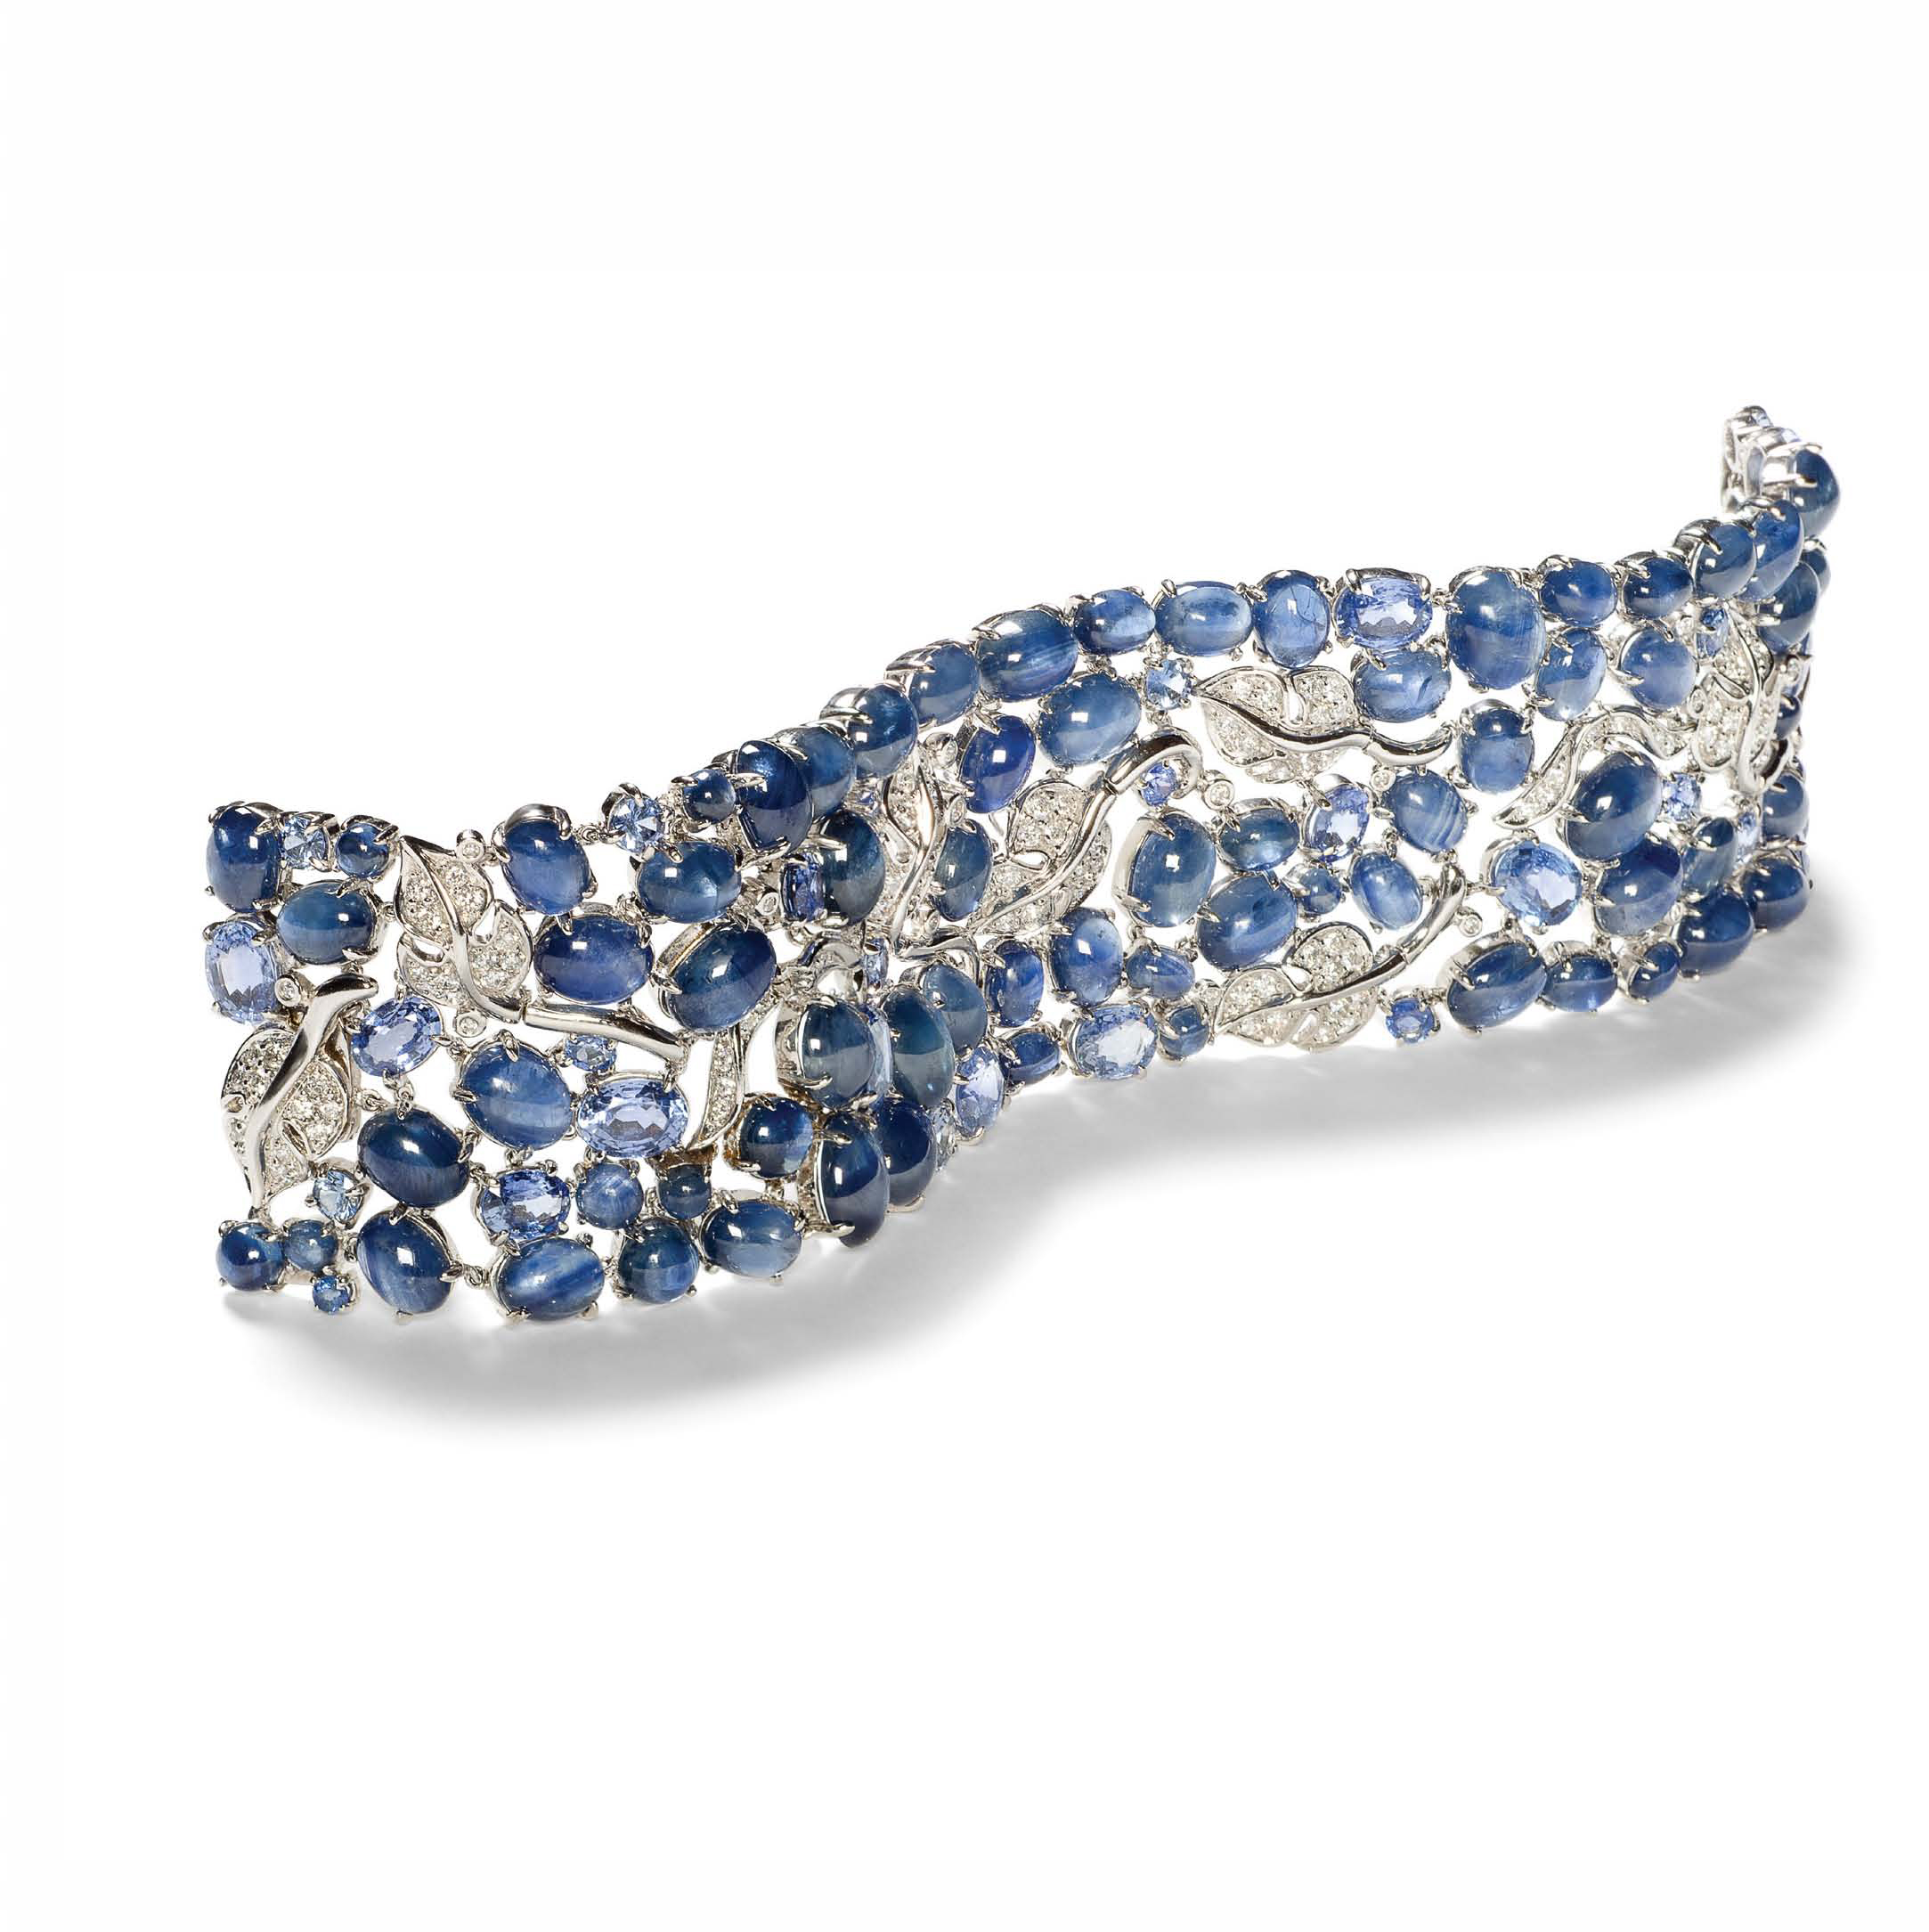 A Vine Bracelet in Sapphire and Diamond set in 18K White Gold.  Signed Seaman Schepps.